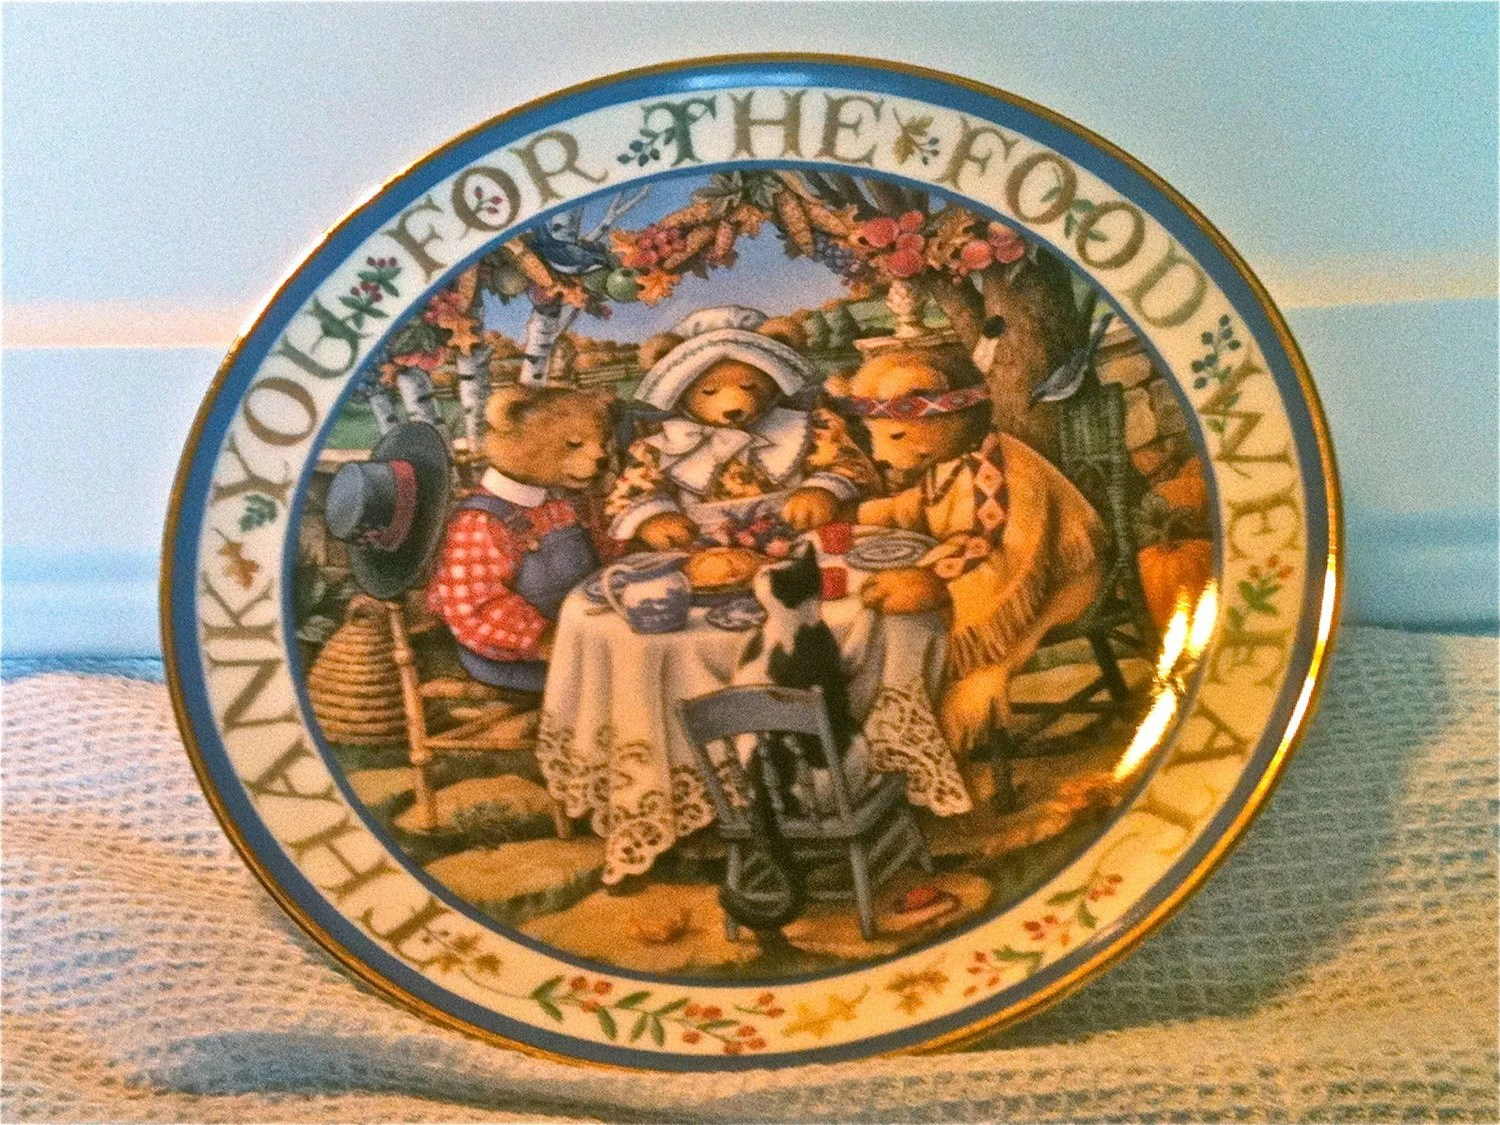 Royal Doulton Thankful Teddies Collectible plate epsteam dianehills - DianeHills